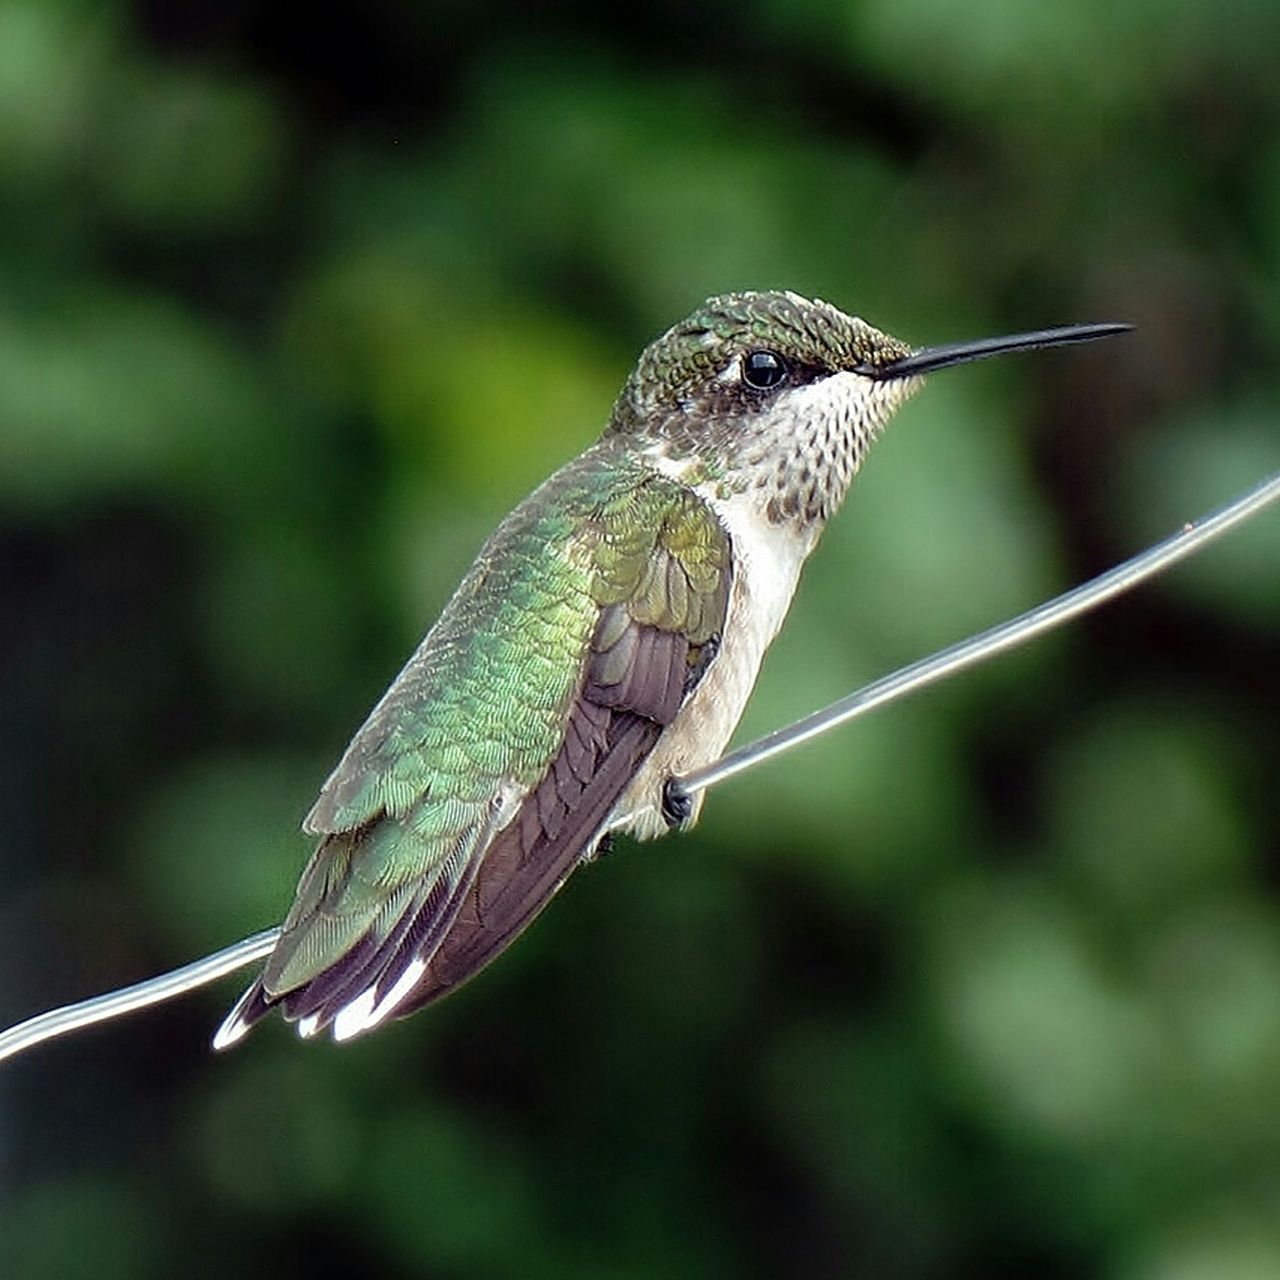 He's resting, taking a breather I presume. Humming birds are speedy little things🐦 Nature Naturelovers Hummingbird Humming Bird Bird Photography Animal Wildlife